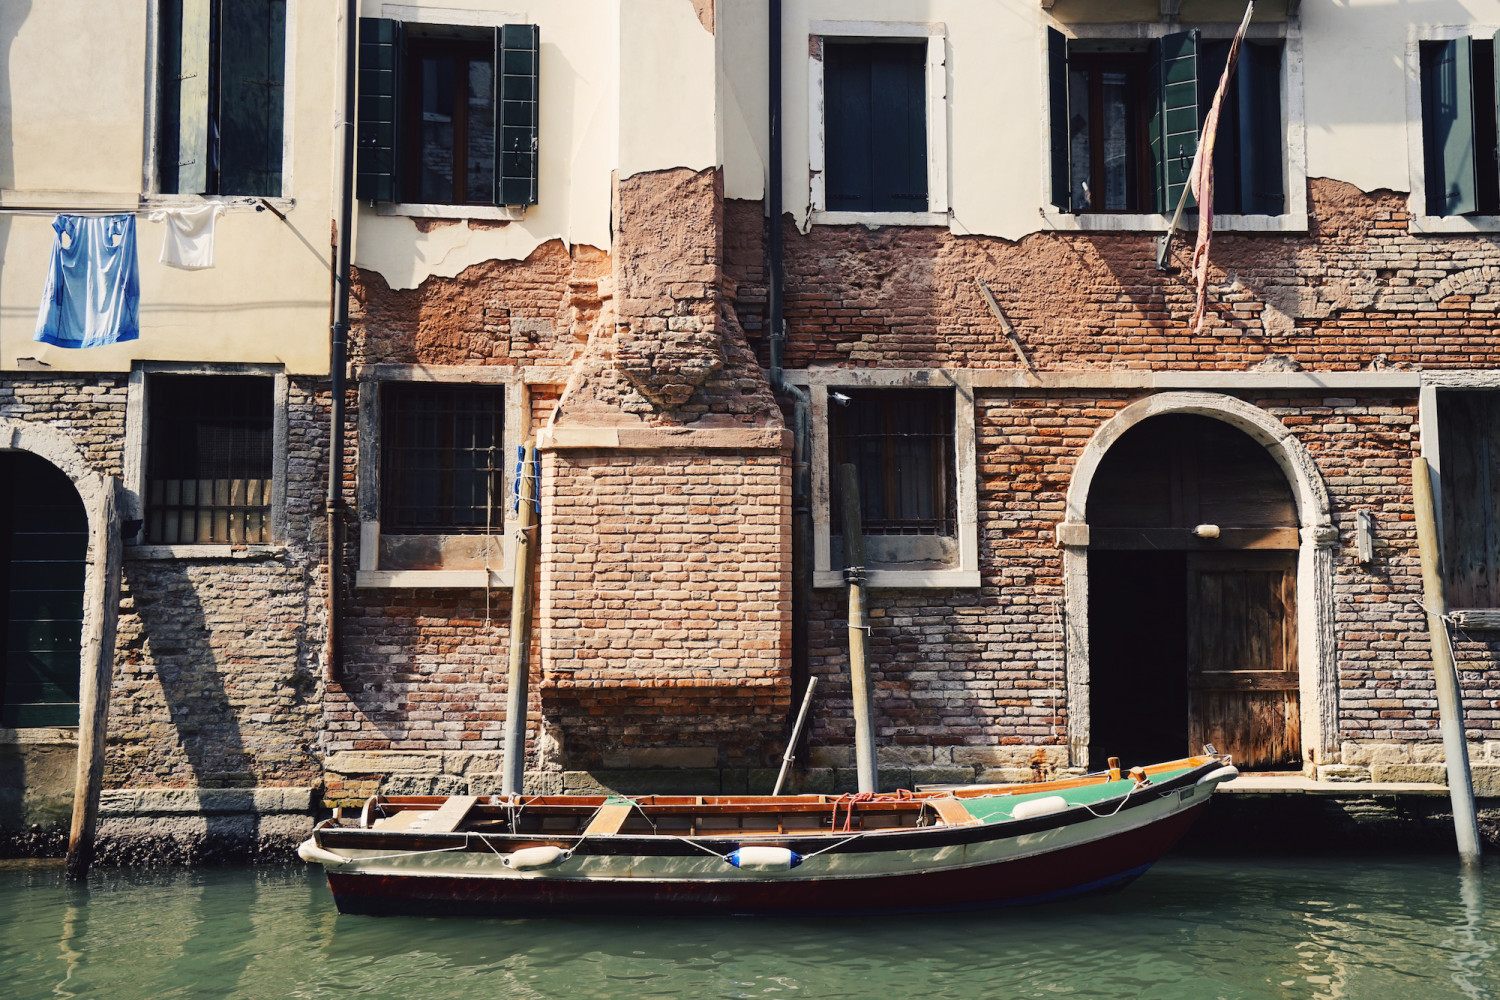 venice-boat-crumbling-facade-dante-vincent-photography